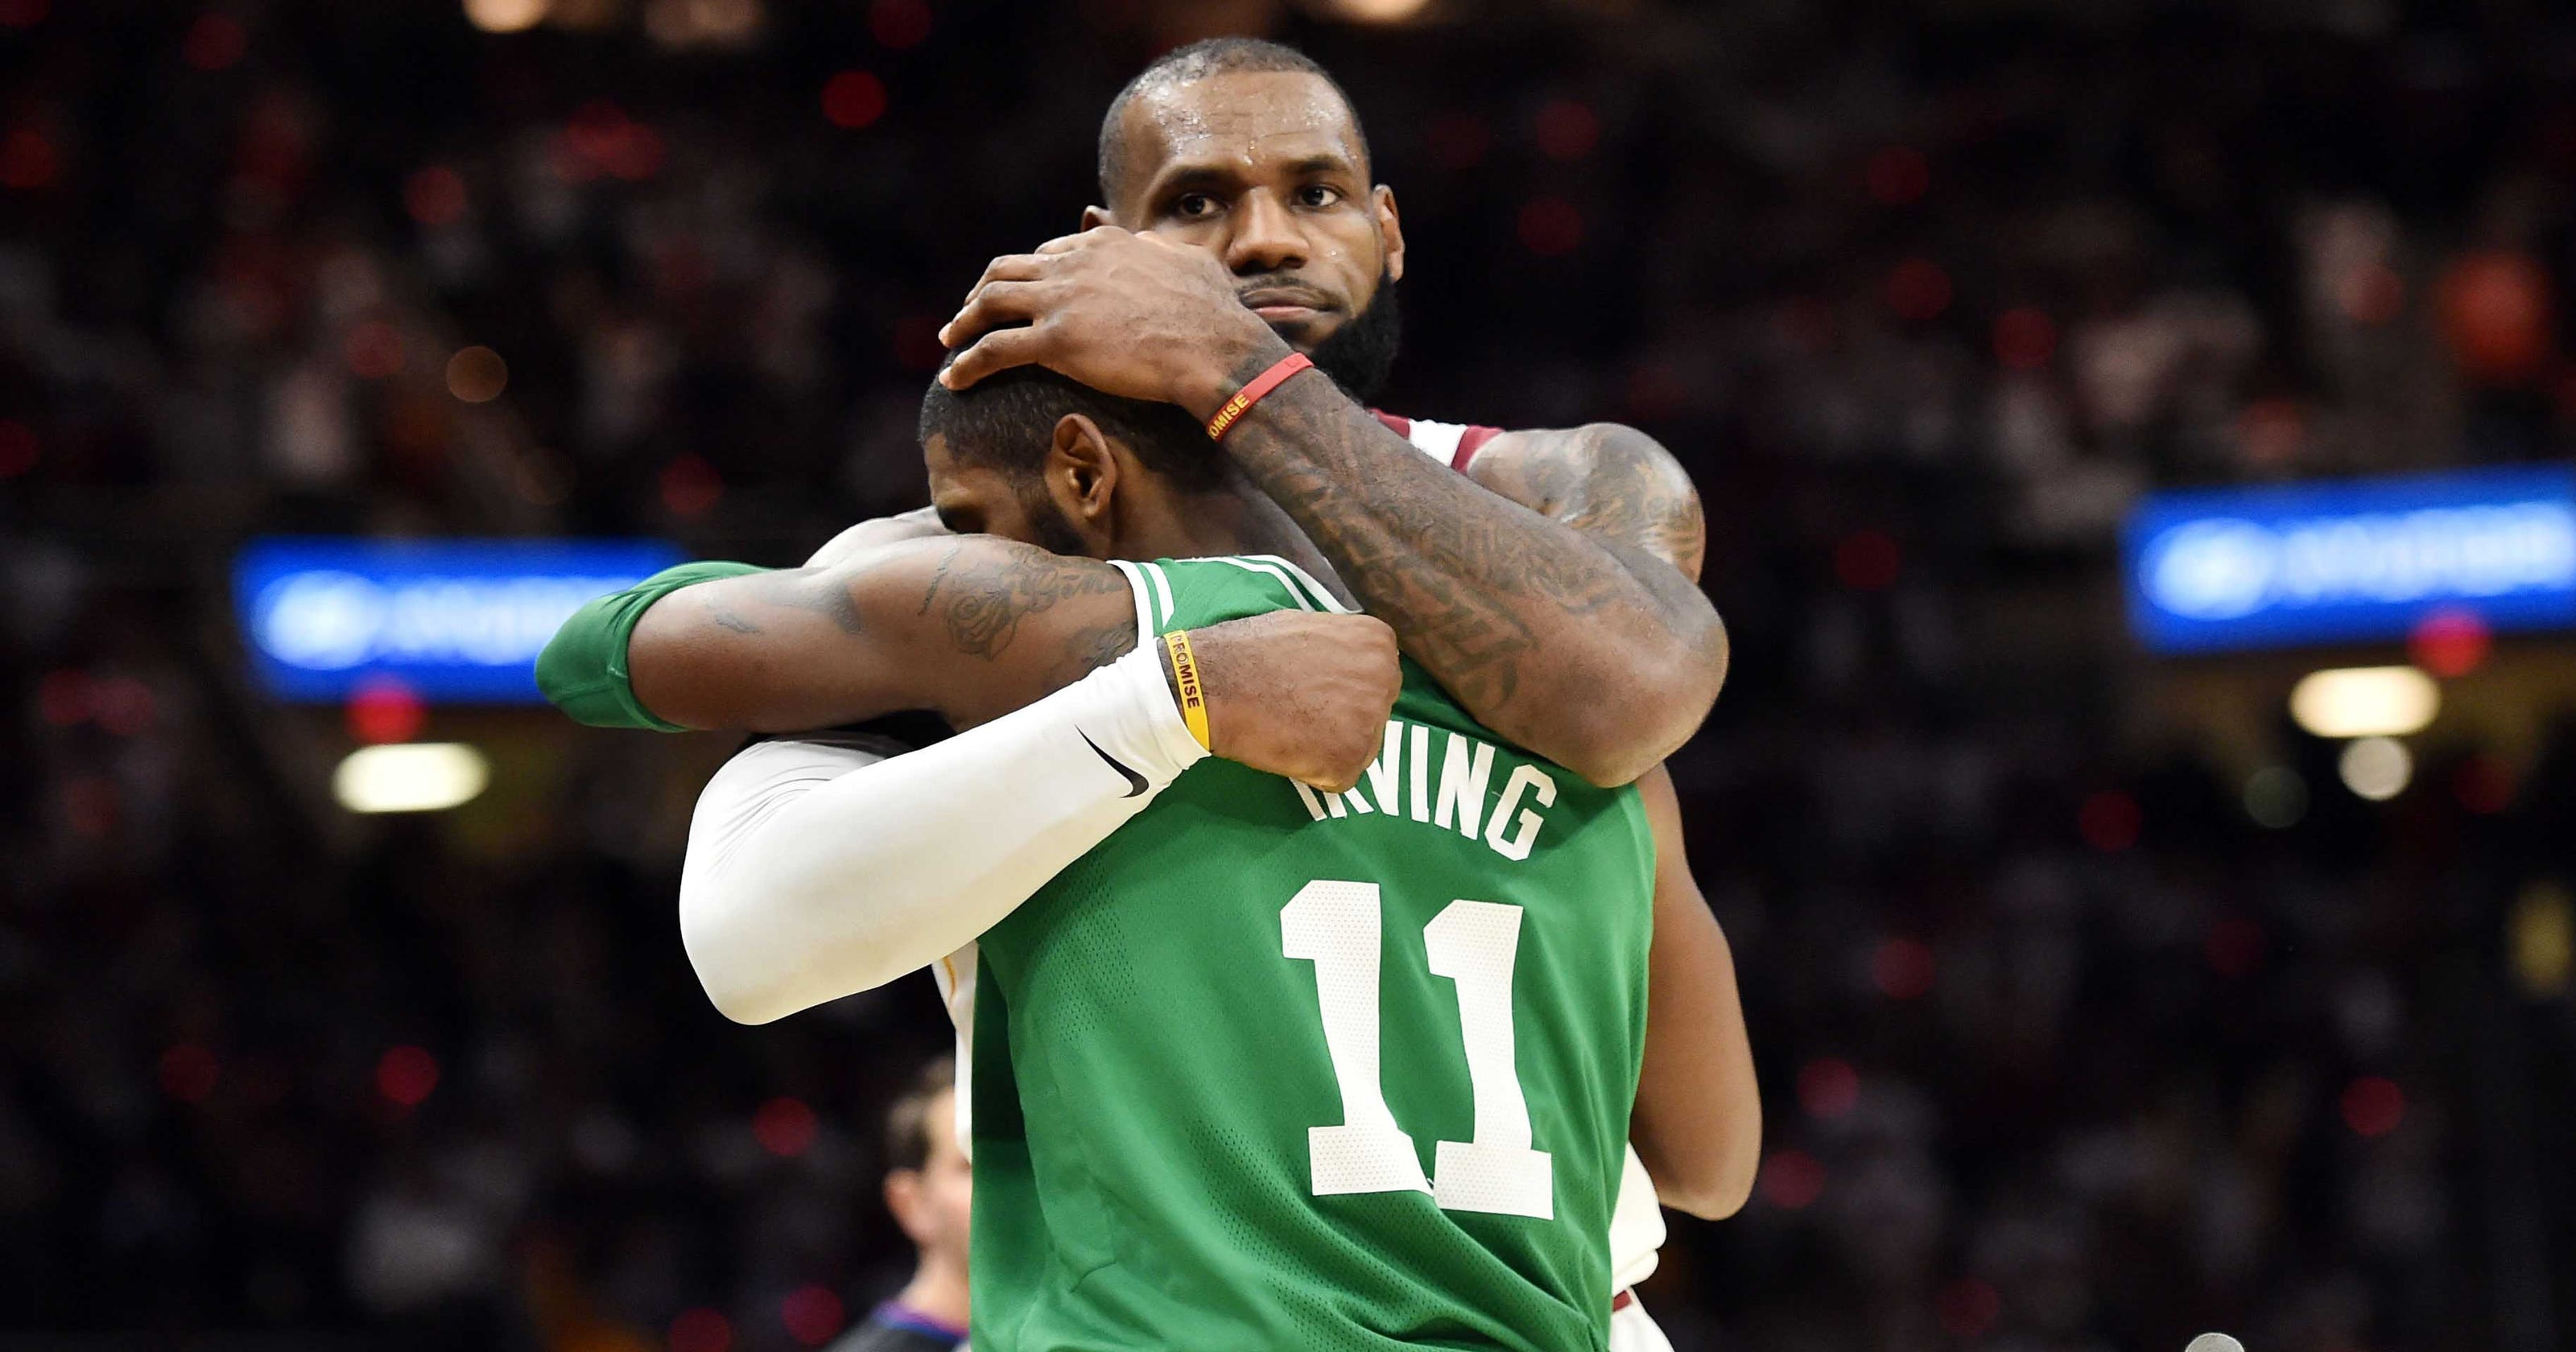 db9f6dff0 NBA All-Star draft results  LeBron James selects ex-teammate Kyrie Irving